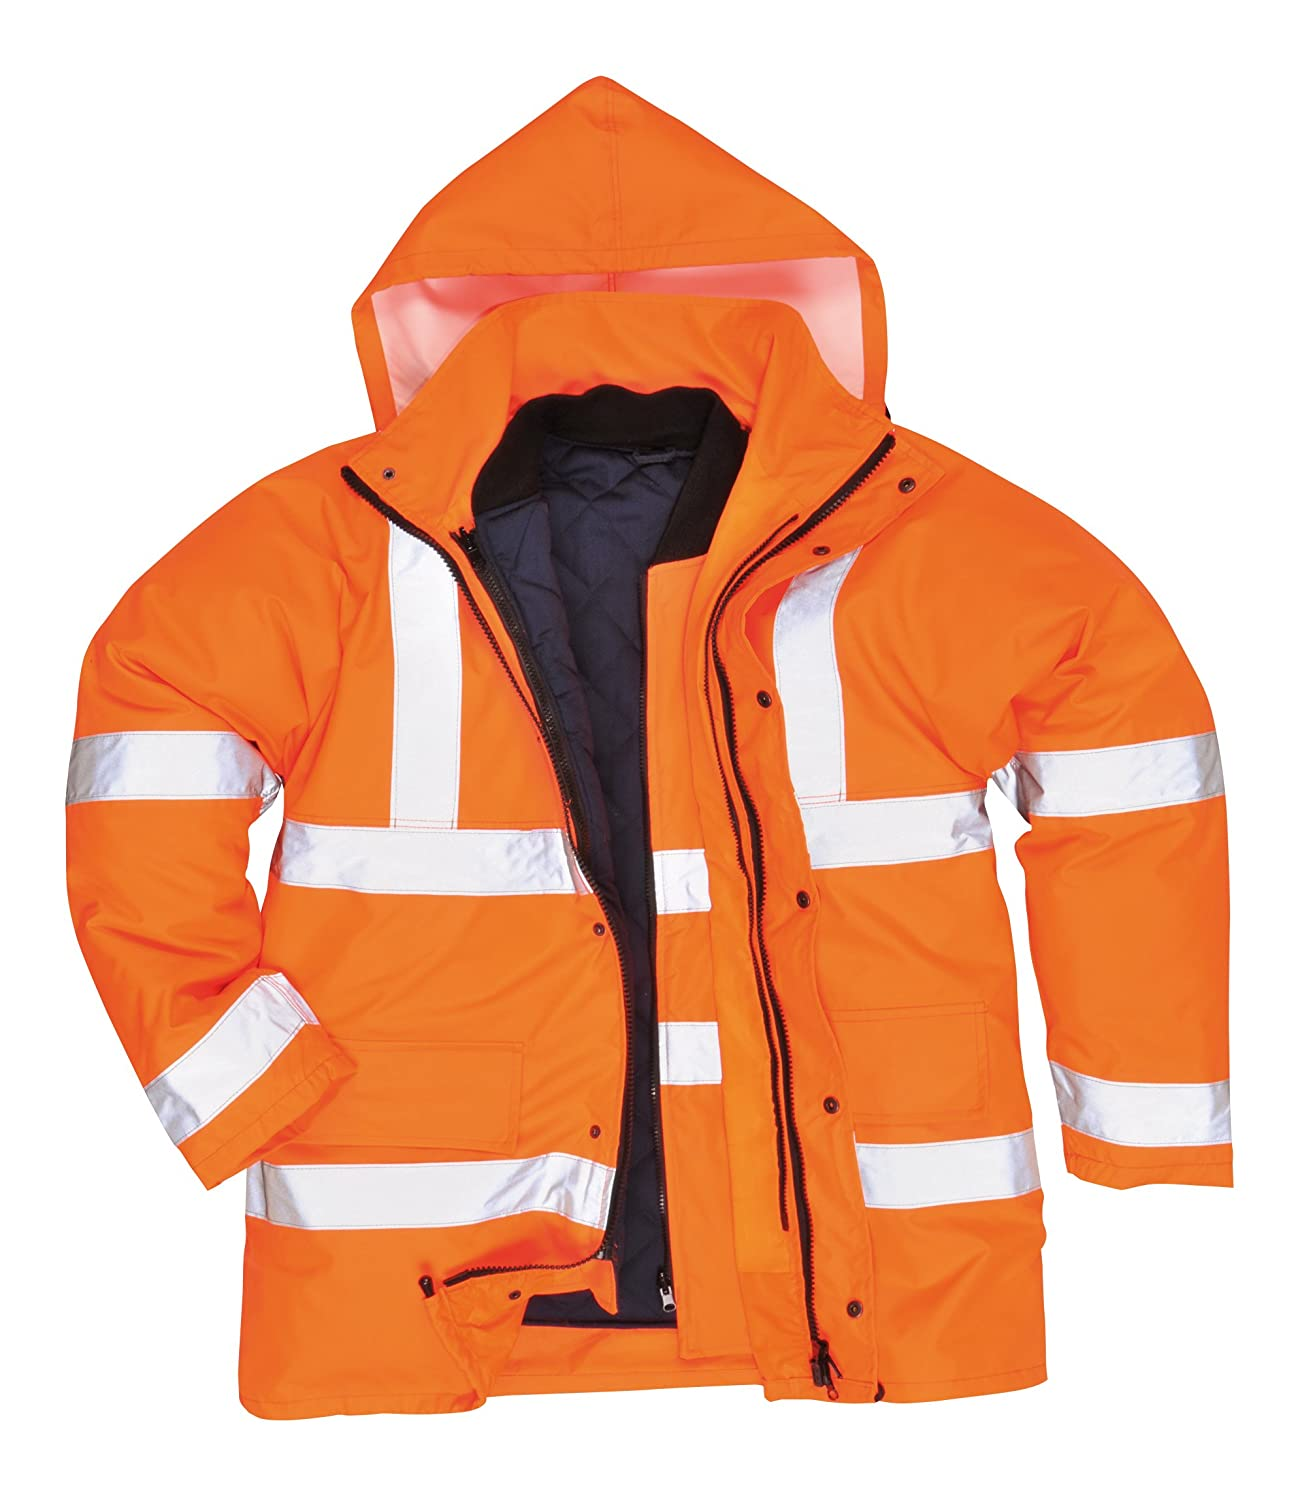 Portwest S468YERXXL Hi-Vis 4-in-1 Traffic Jacket, Regular, Size XX-Large, Yellow Portwest Clothing Ltd